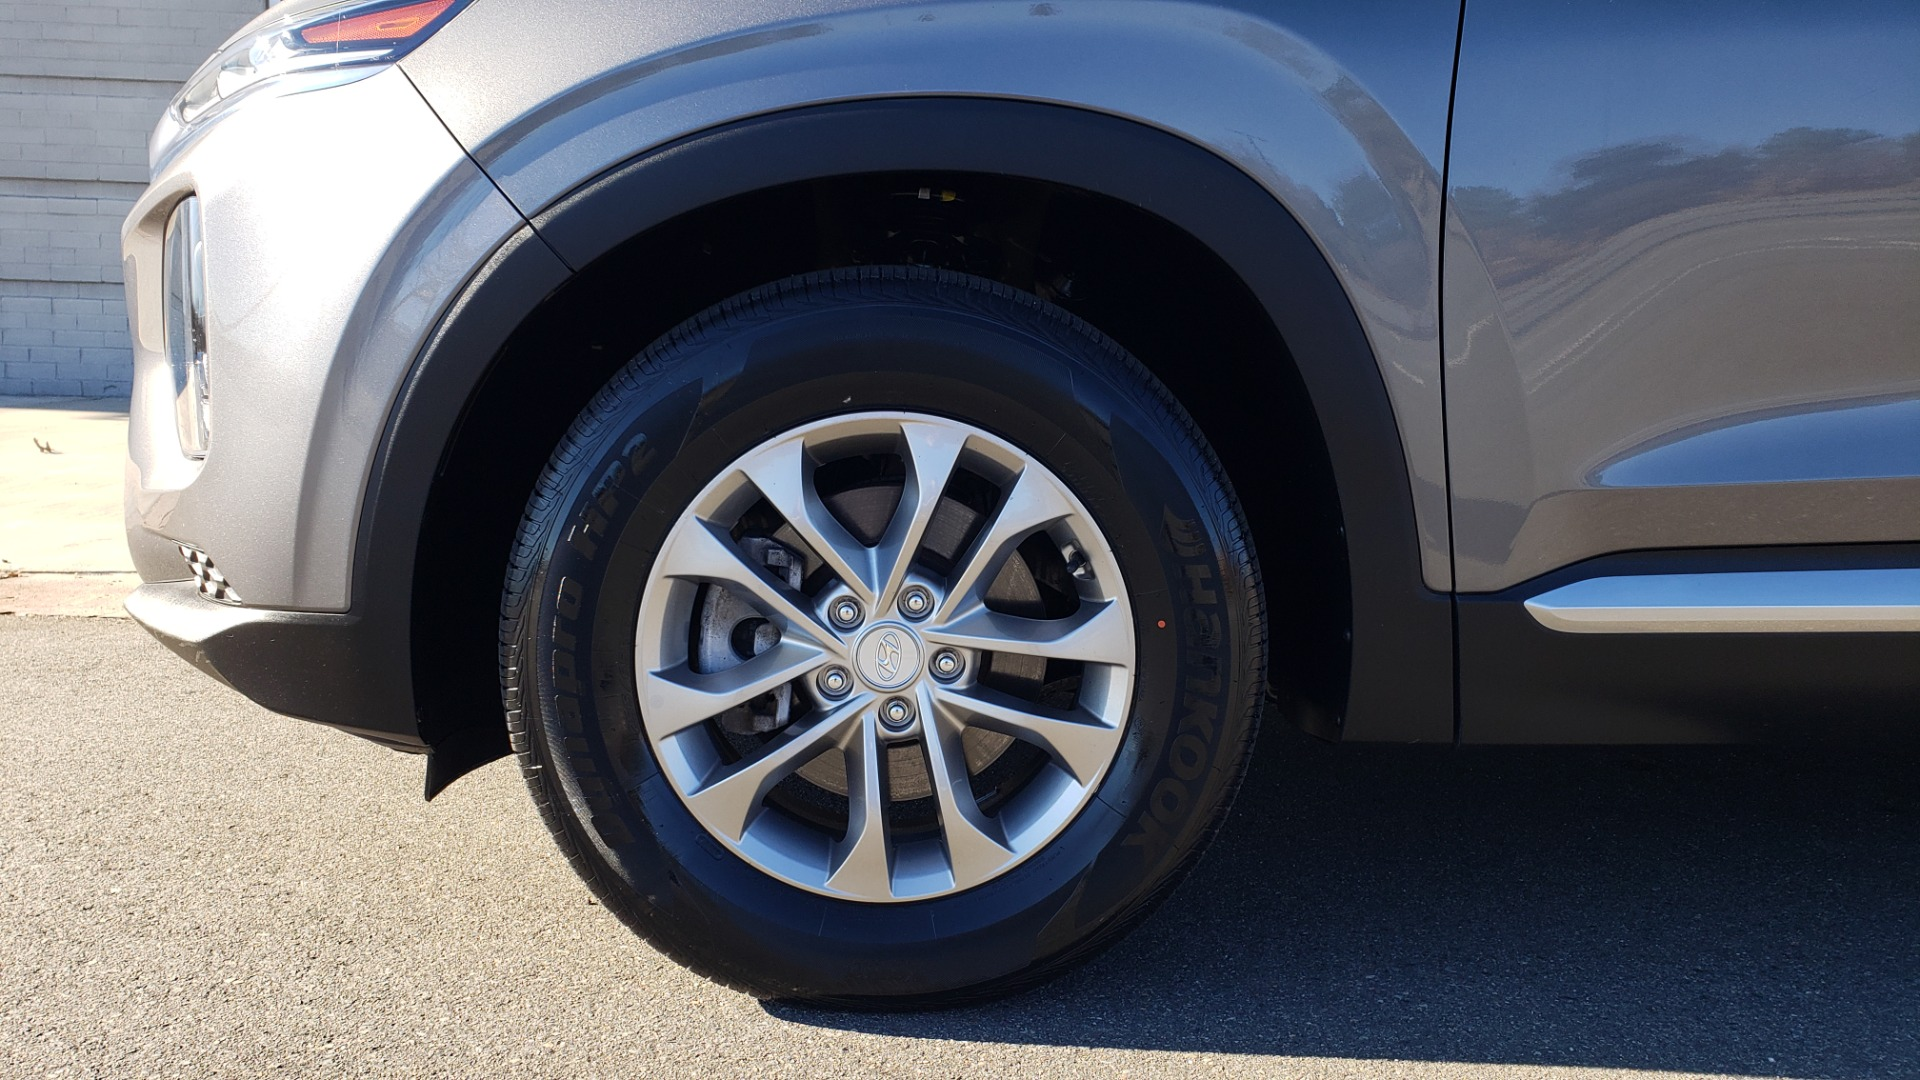 Used 2019 Hyundai SANTA FE SE / 2.4L 4-CYL / 8-SPD AUTO / BLIND SPOT / LANE KEEP ASSIST for sale Sold at Formula Imports in Charlotte NC 28227 77